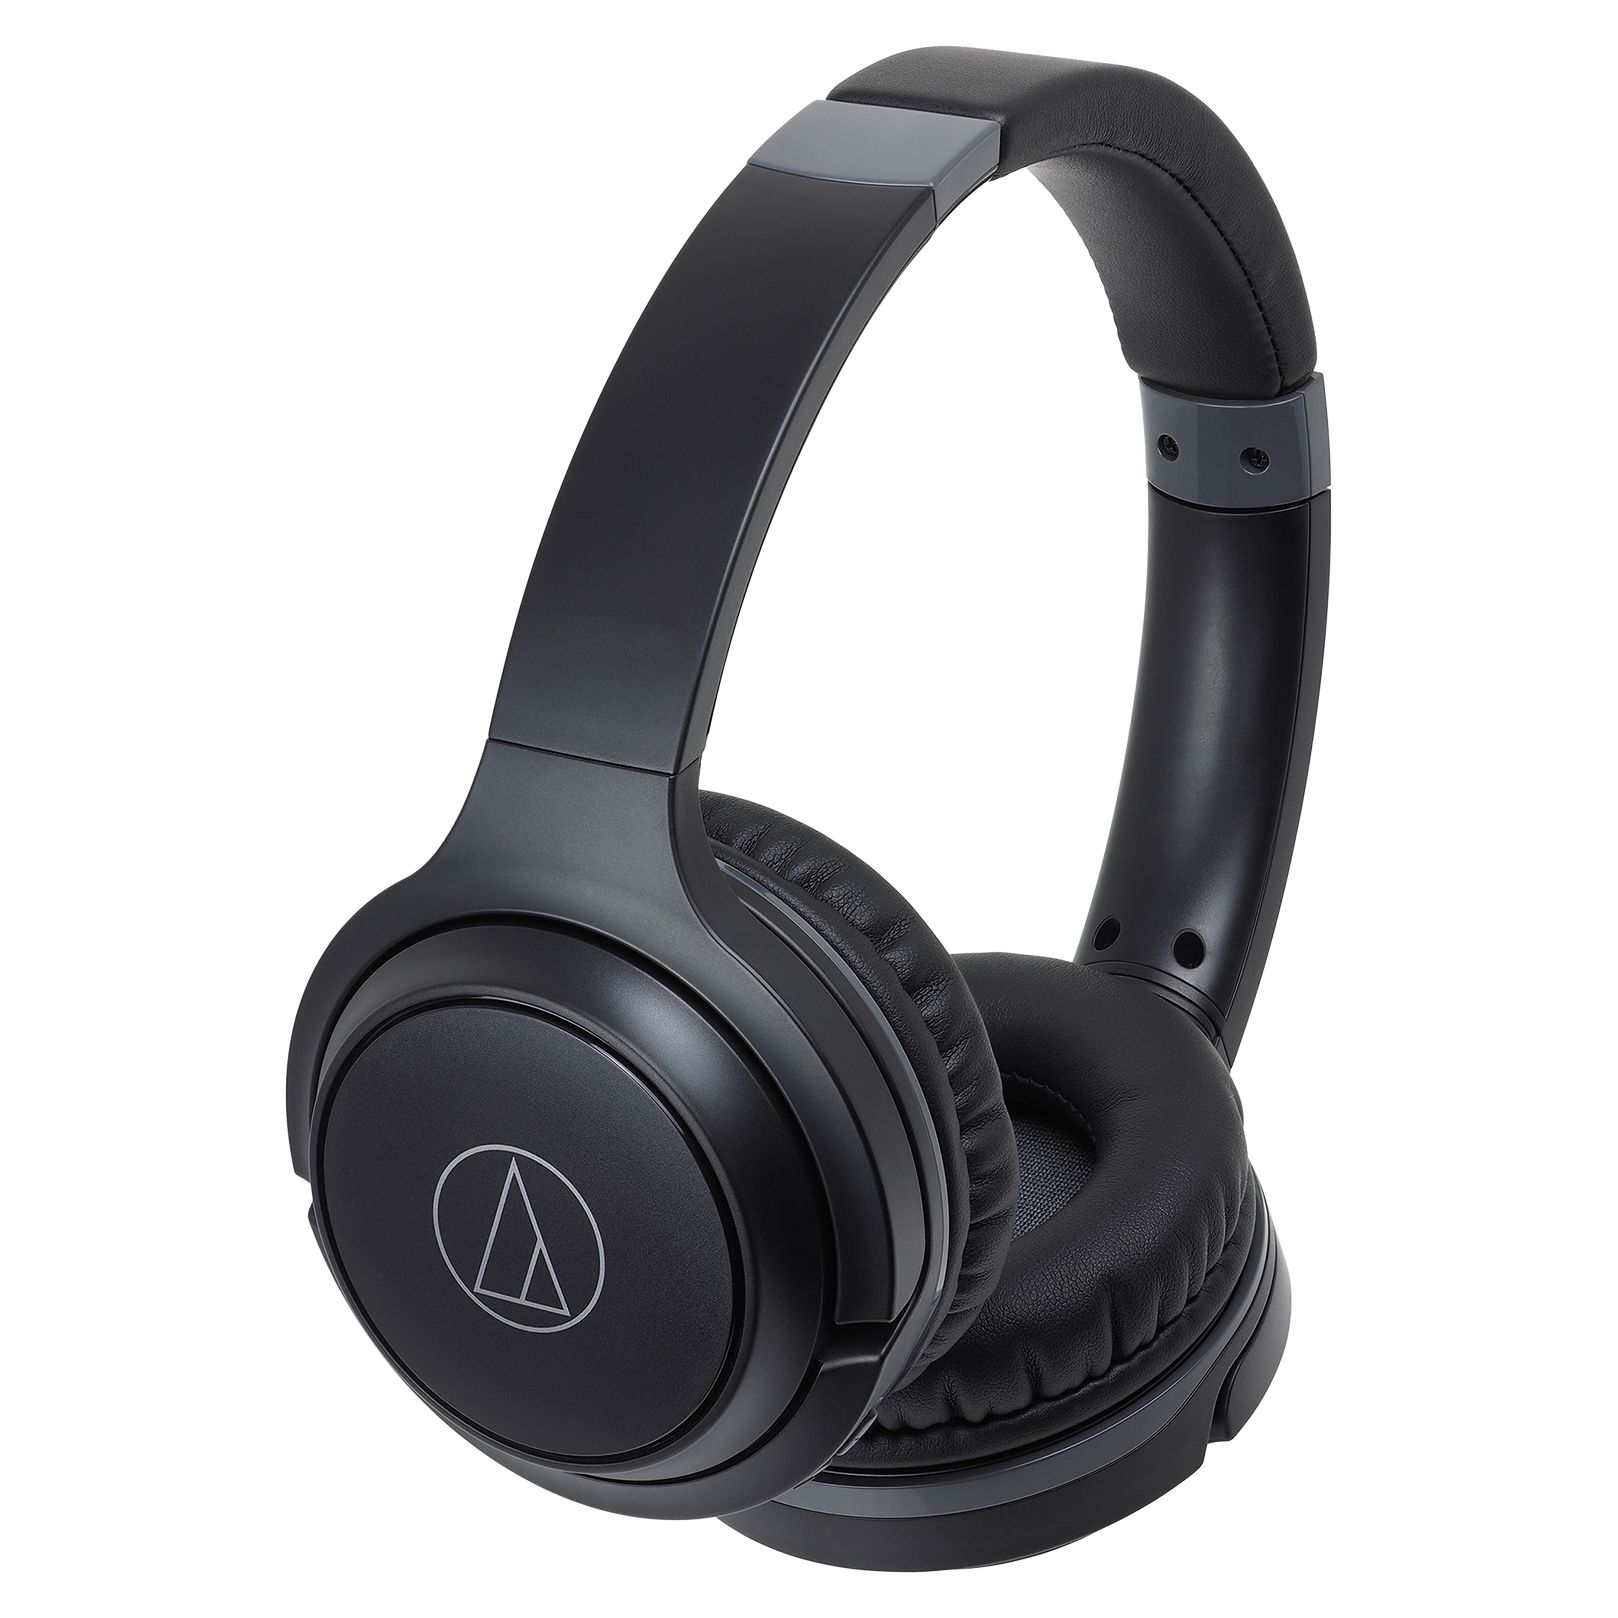 Audio-Technica Audio-Technica ATH-S200BT Wireless Bluetooth On-Ear Headphones